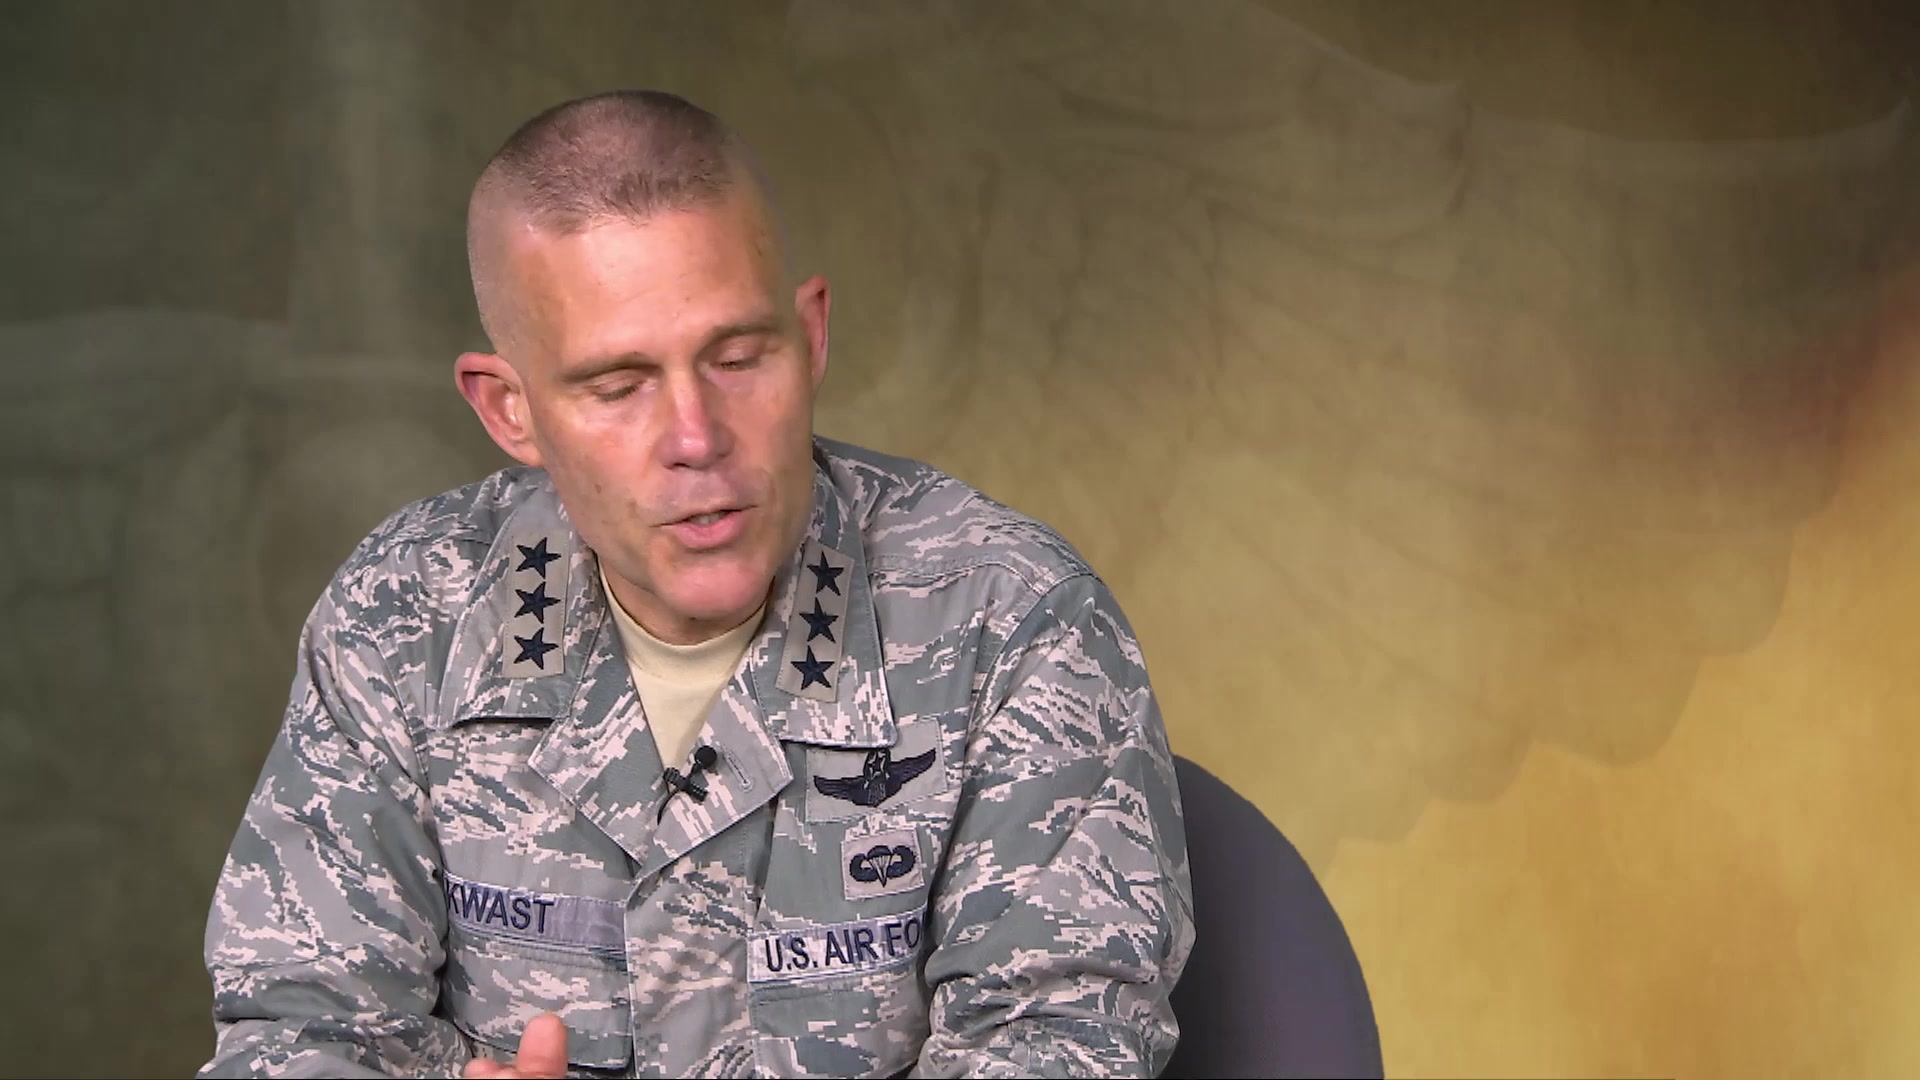 Over the Horizon Interview with LtGen Steven L. Kwast; Commander Air Education and Training Command, Joint Base San Antonio-Randolph and the former Commander of Air University Maxwell AFB. LtGen Kwast gives his perspective on a number of subjects that are affecting us today and in the future.